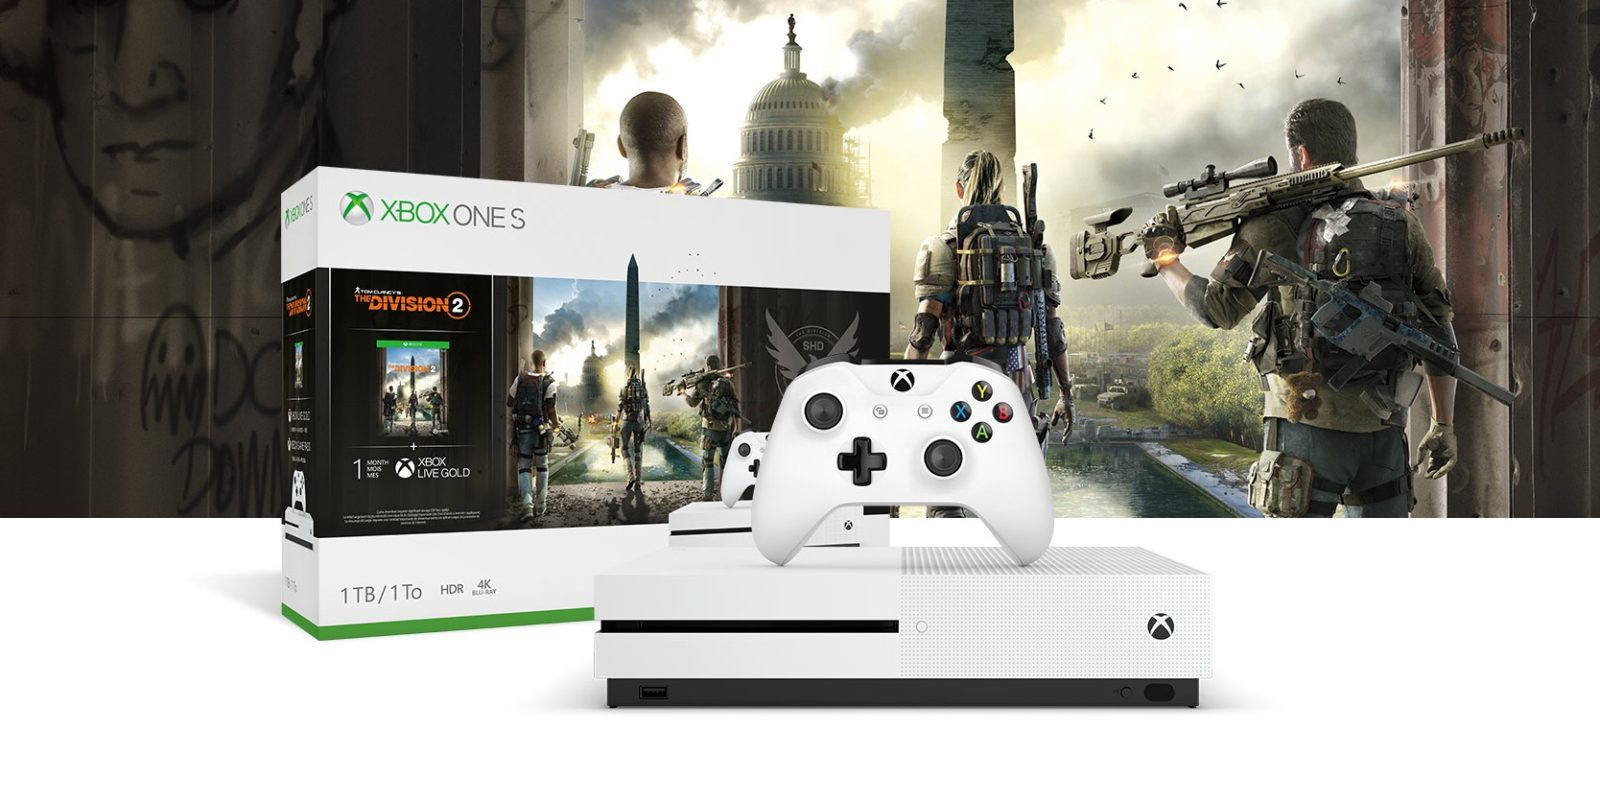 Xbox One bundles up to $120 off: Division 2, Madden NFL 20, more from $172